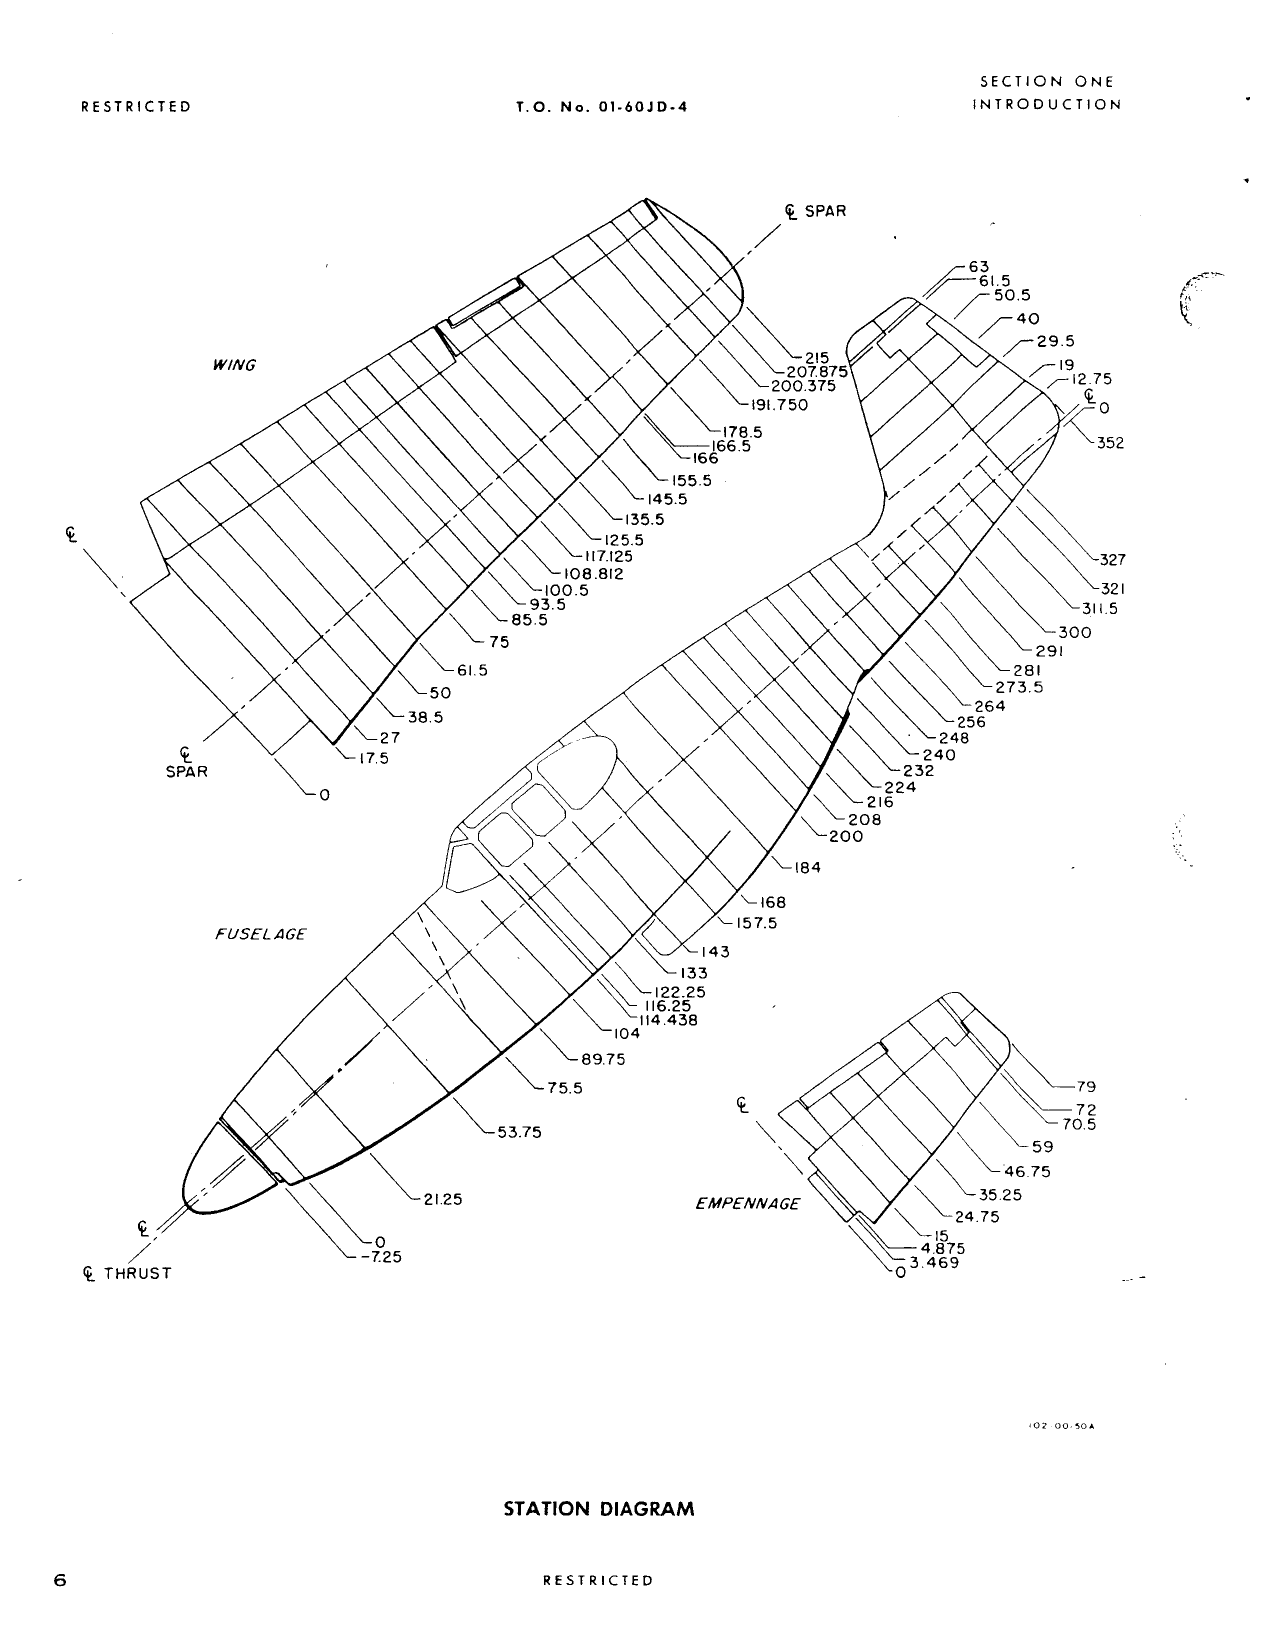 Sample page 10 from AirCorps Library document: P-51C Parts Catalog